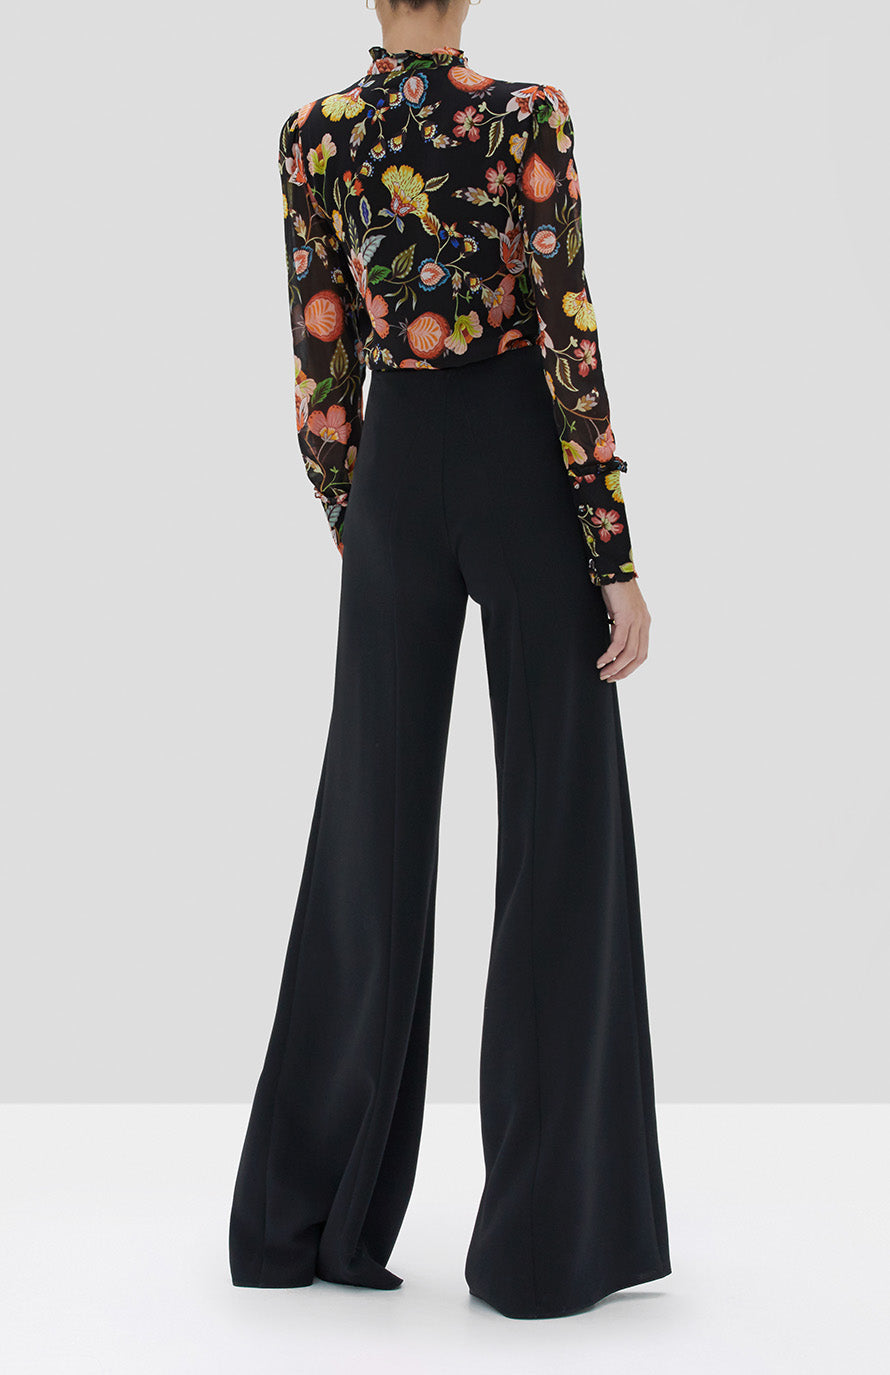 Alexis Elodie Top Black Nouveau and Irvine Pant Black - Rear View